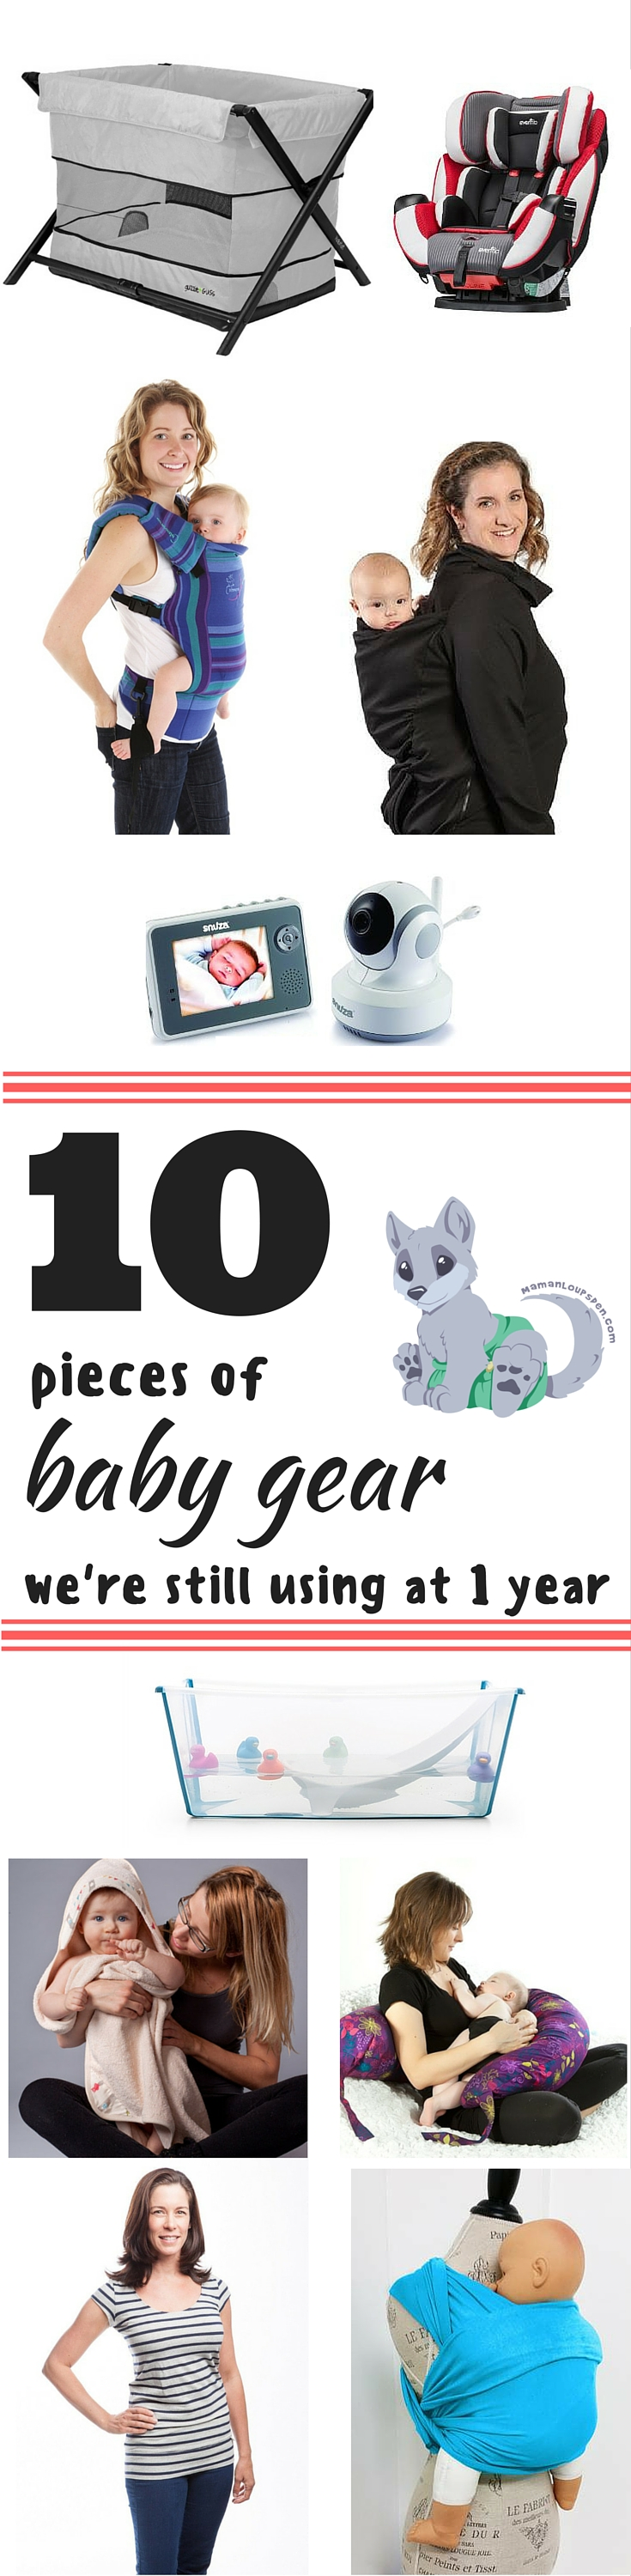 10 Pieces of Baby Gear We're Still Using at 1 year - Maman Loup's Den